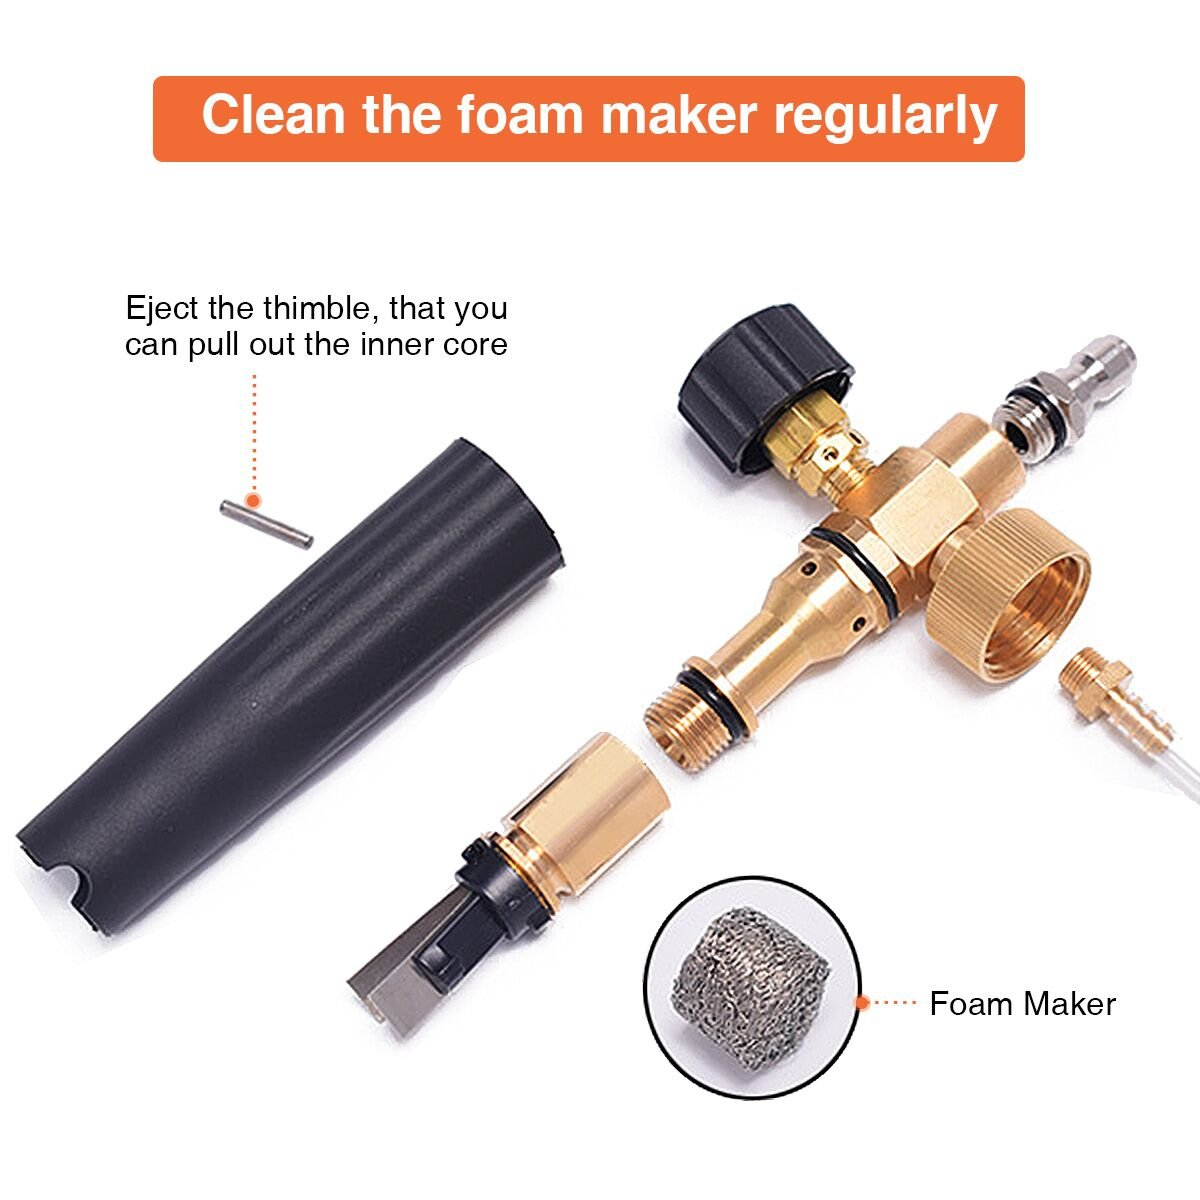 MATCC Adjustable Foam Cannon I Liter Bottle Snow Foam Lance With 1/4'' Quick Connector Foam Blaster for Pressure Washer Gun by MATCC (Image #5)